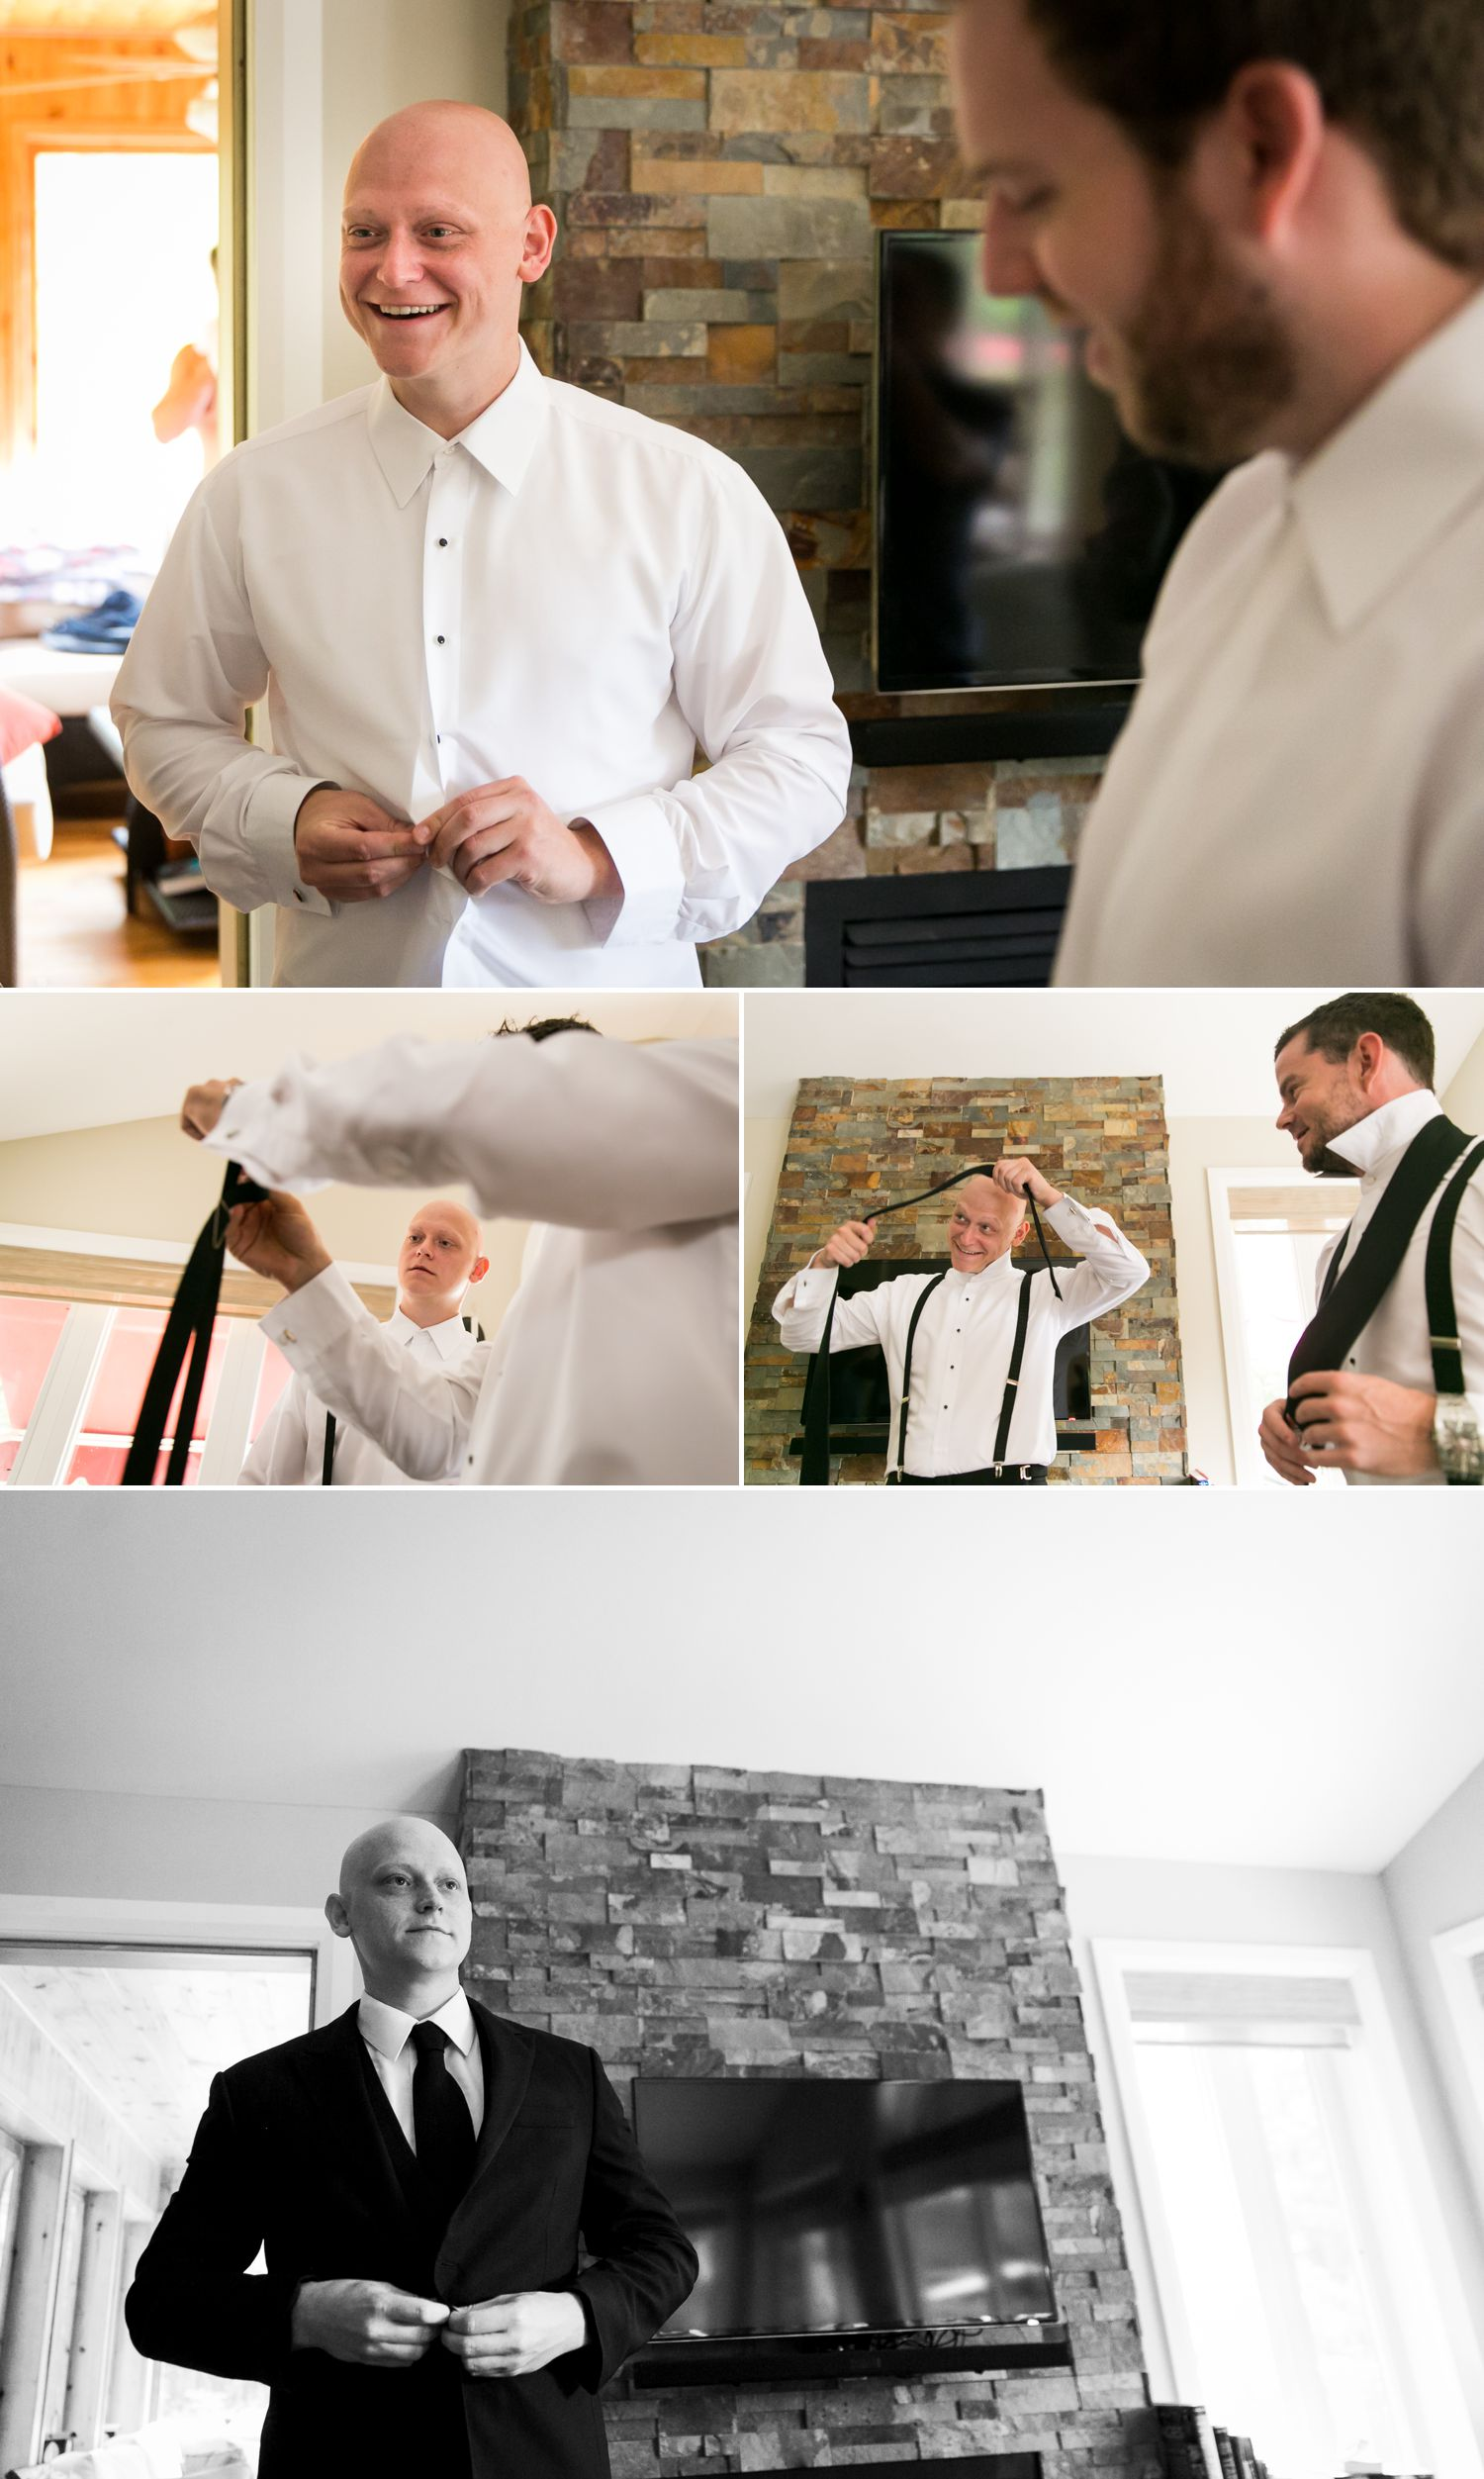 A photograph of the groom and groomsmen getting ready for the wedding